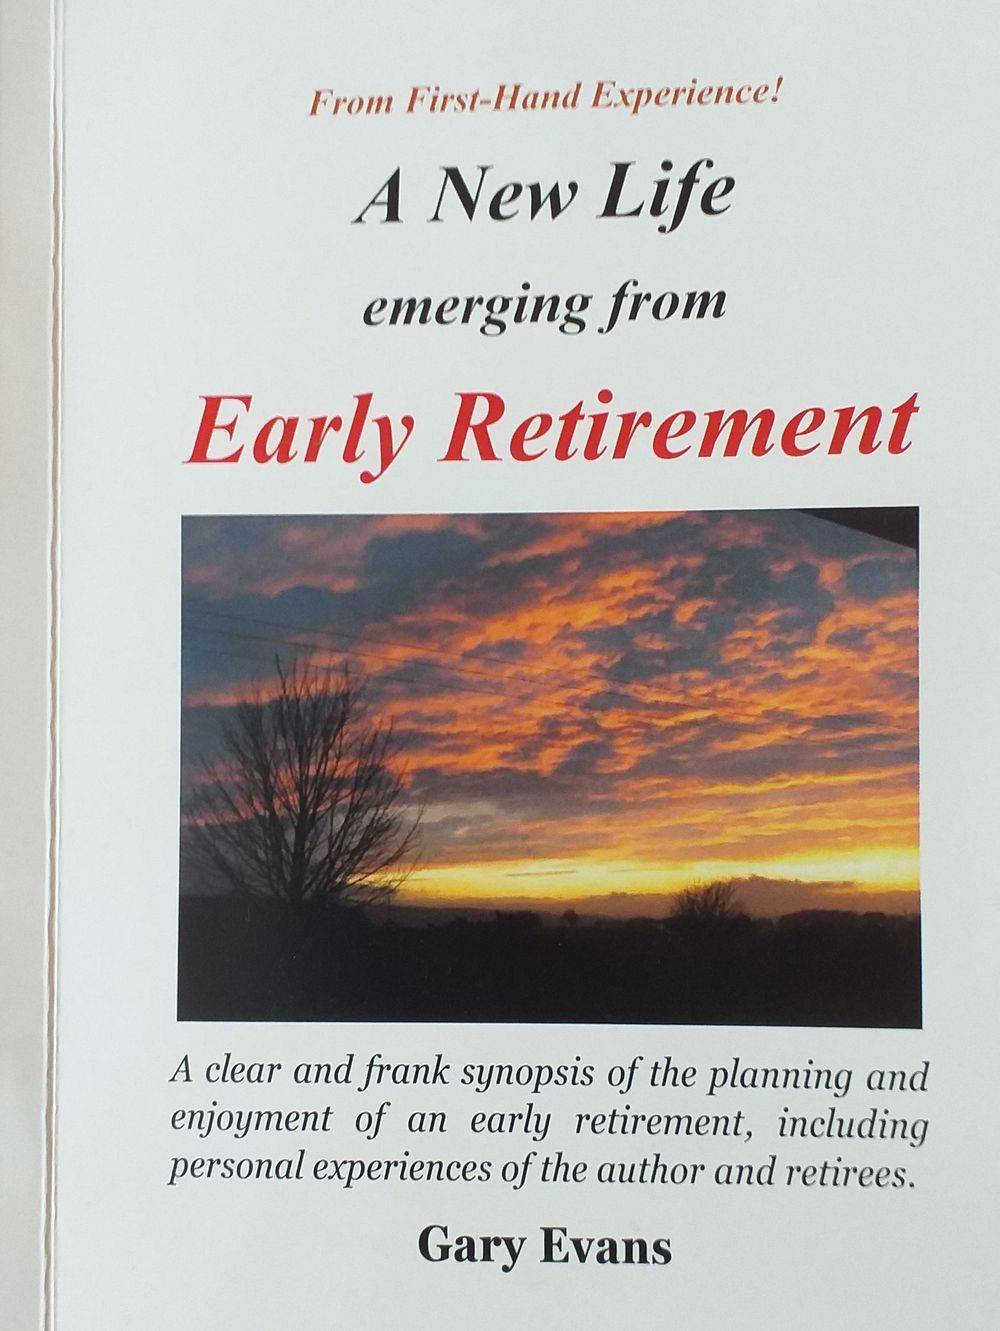 retirement planning, Gary Evans, self-help books